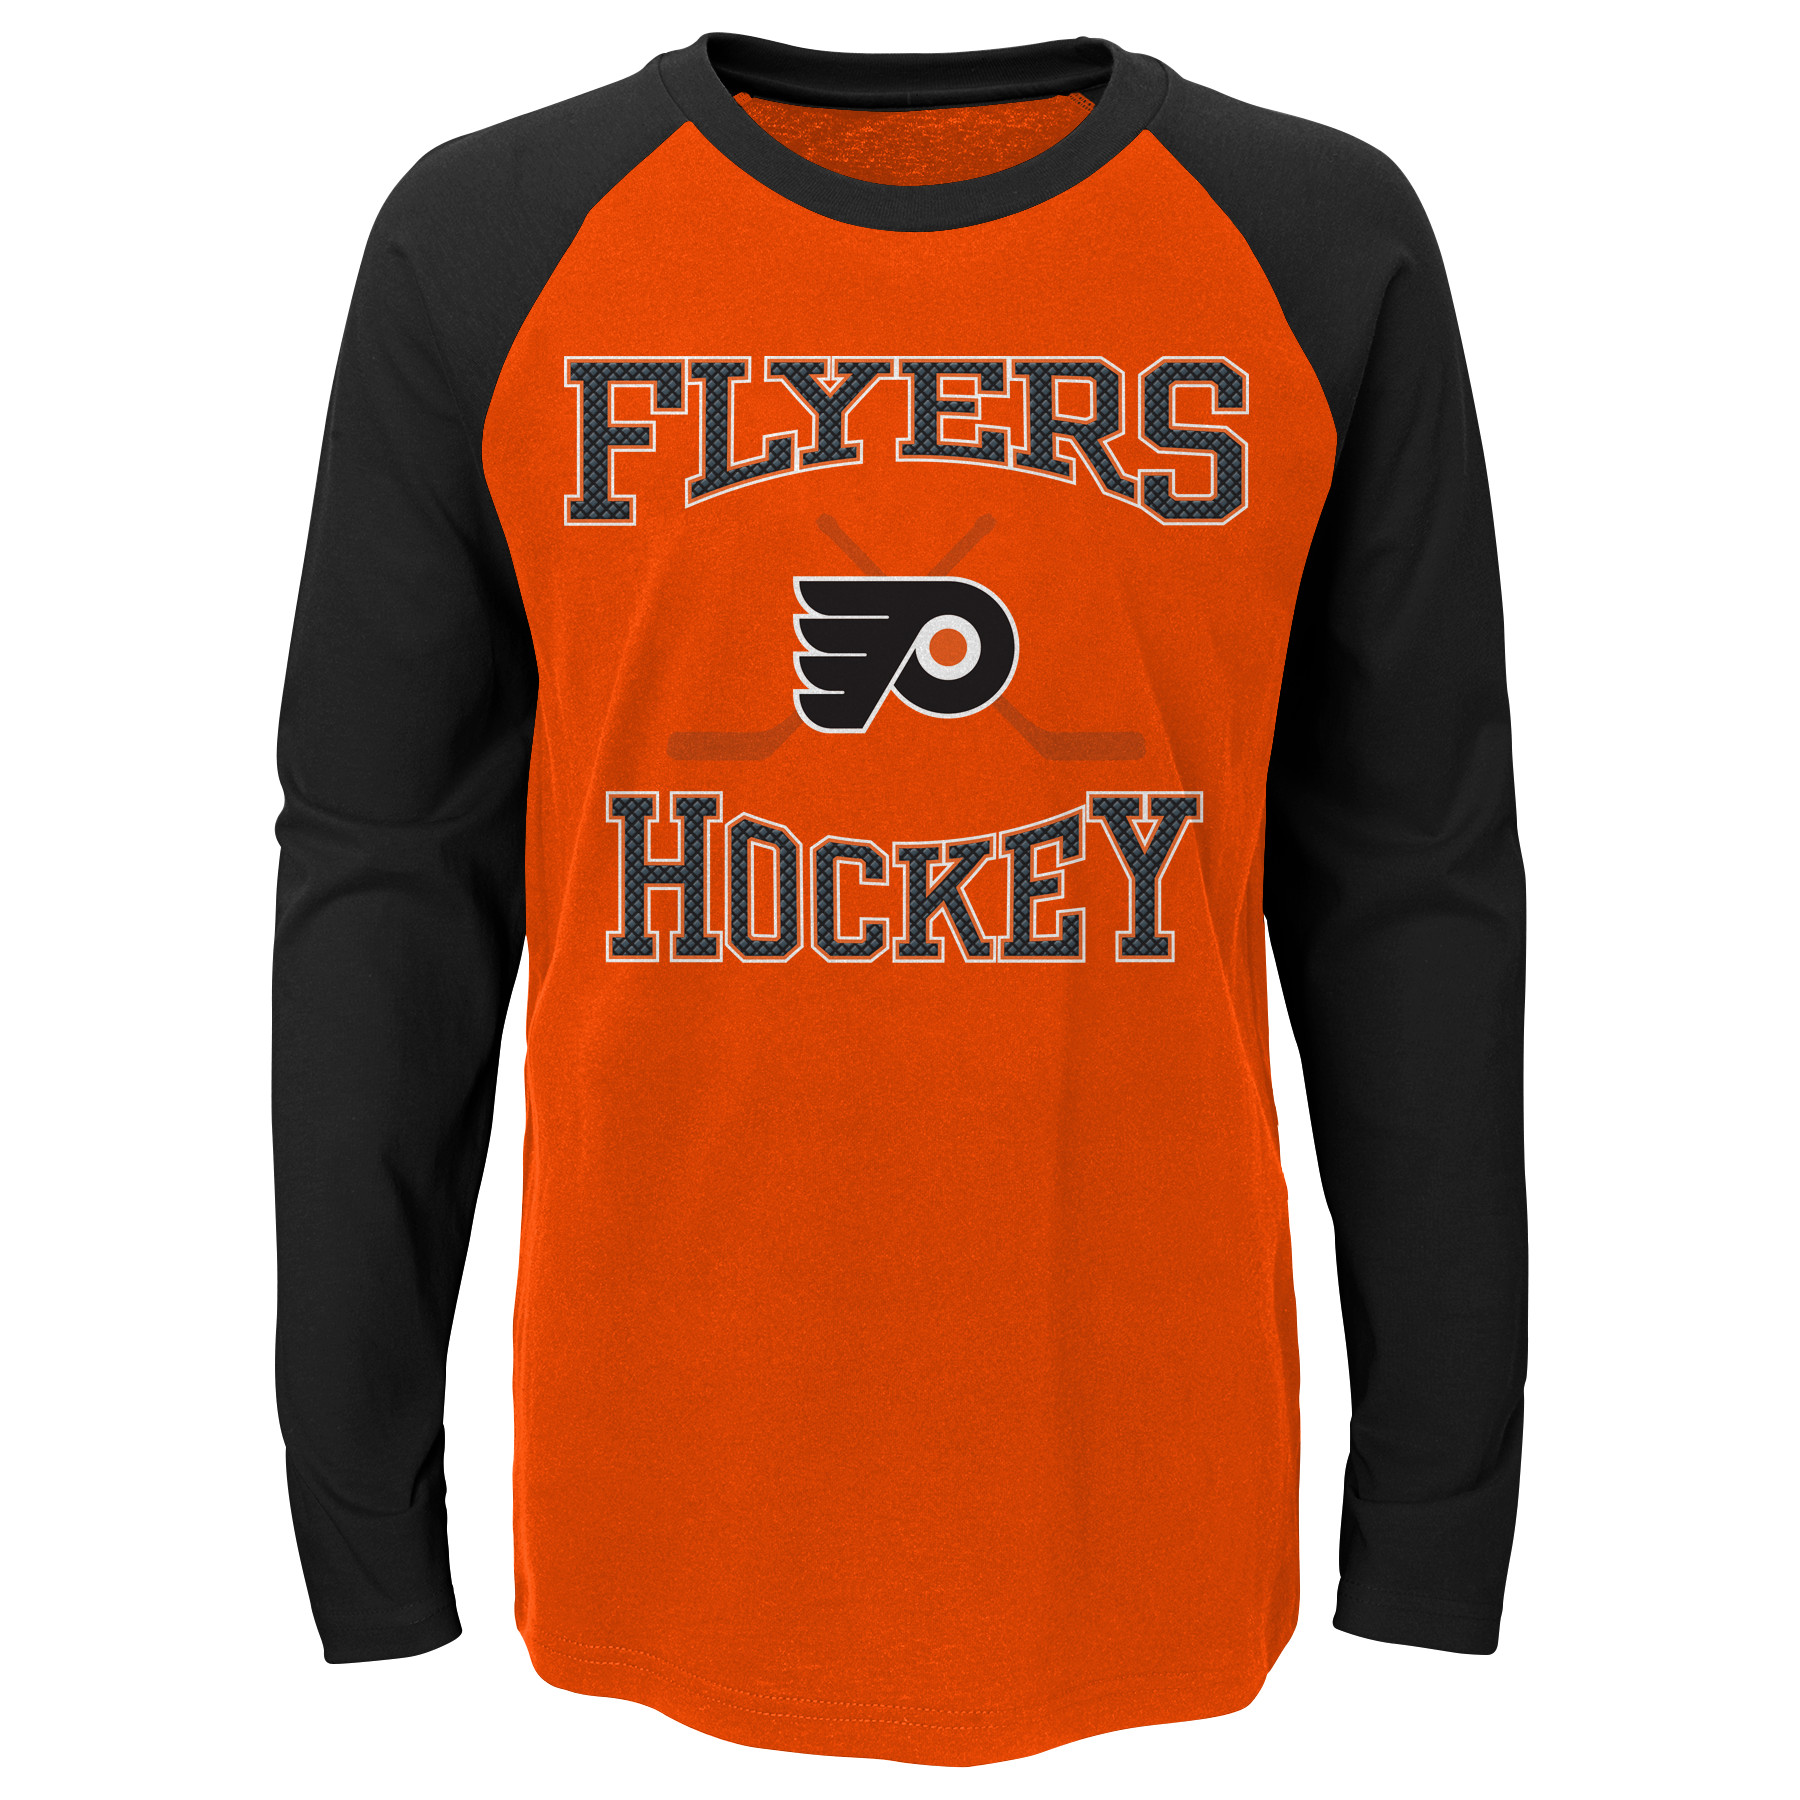 a1dce5a23 Philadelphia Flyers Youth Morning Skate Long Sleeve Tee by Outerstuff